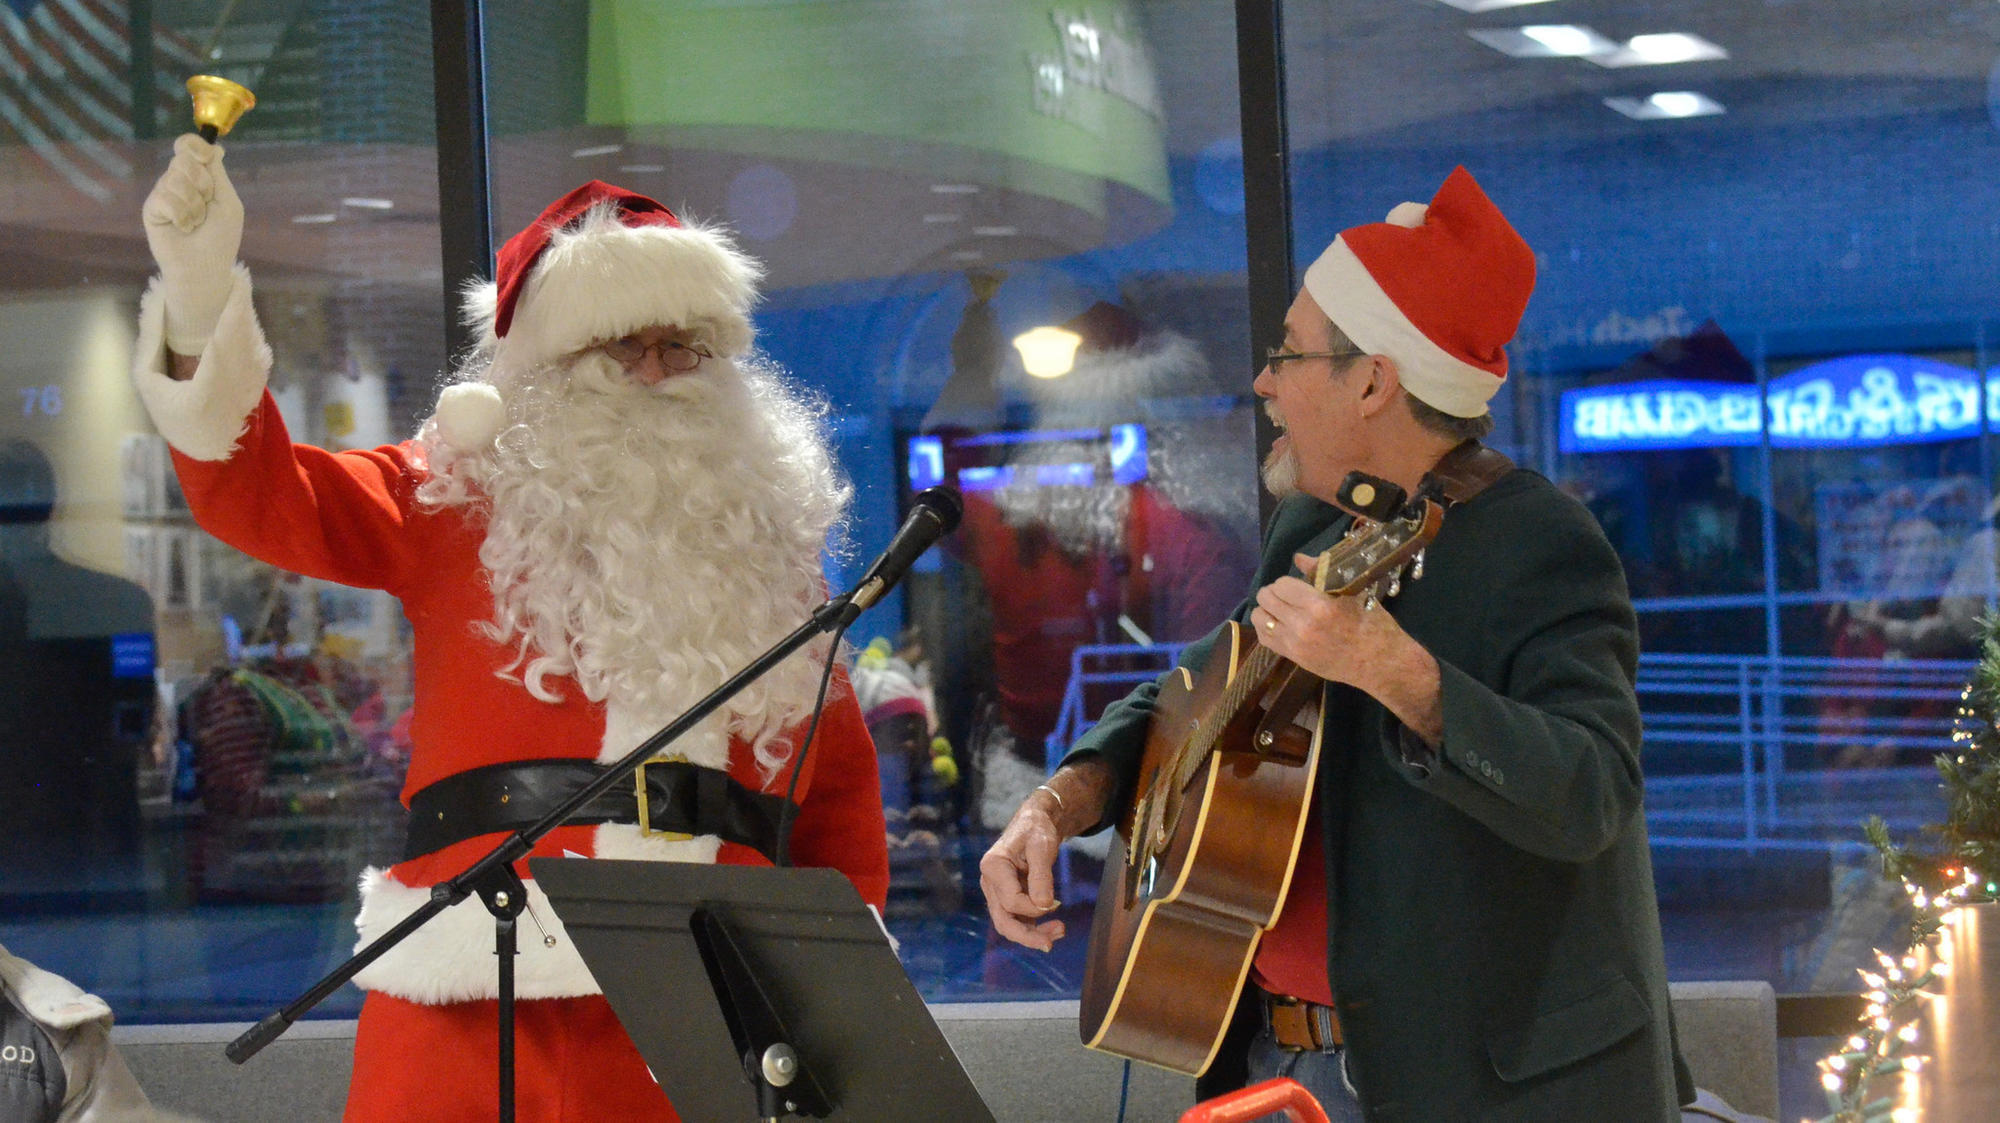 Boys & Girls Club of Westminster celebrates the holidays in their